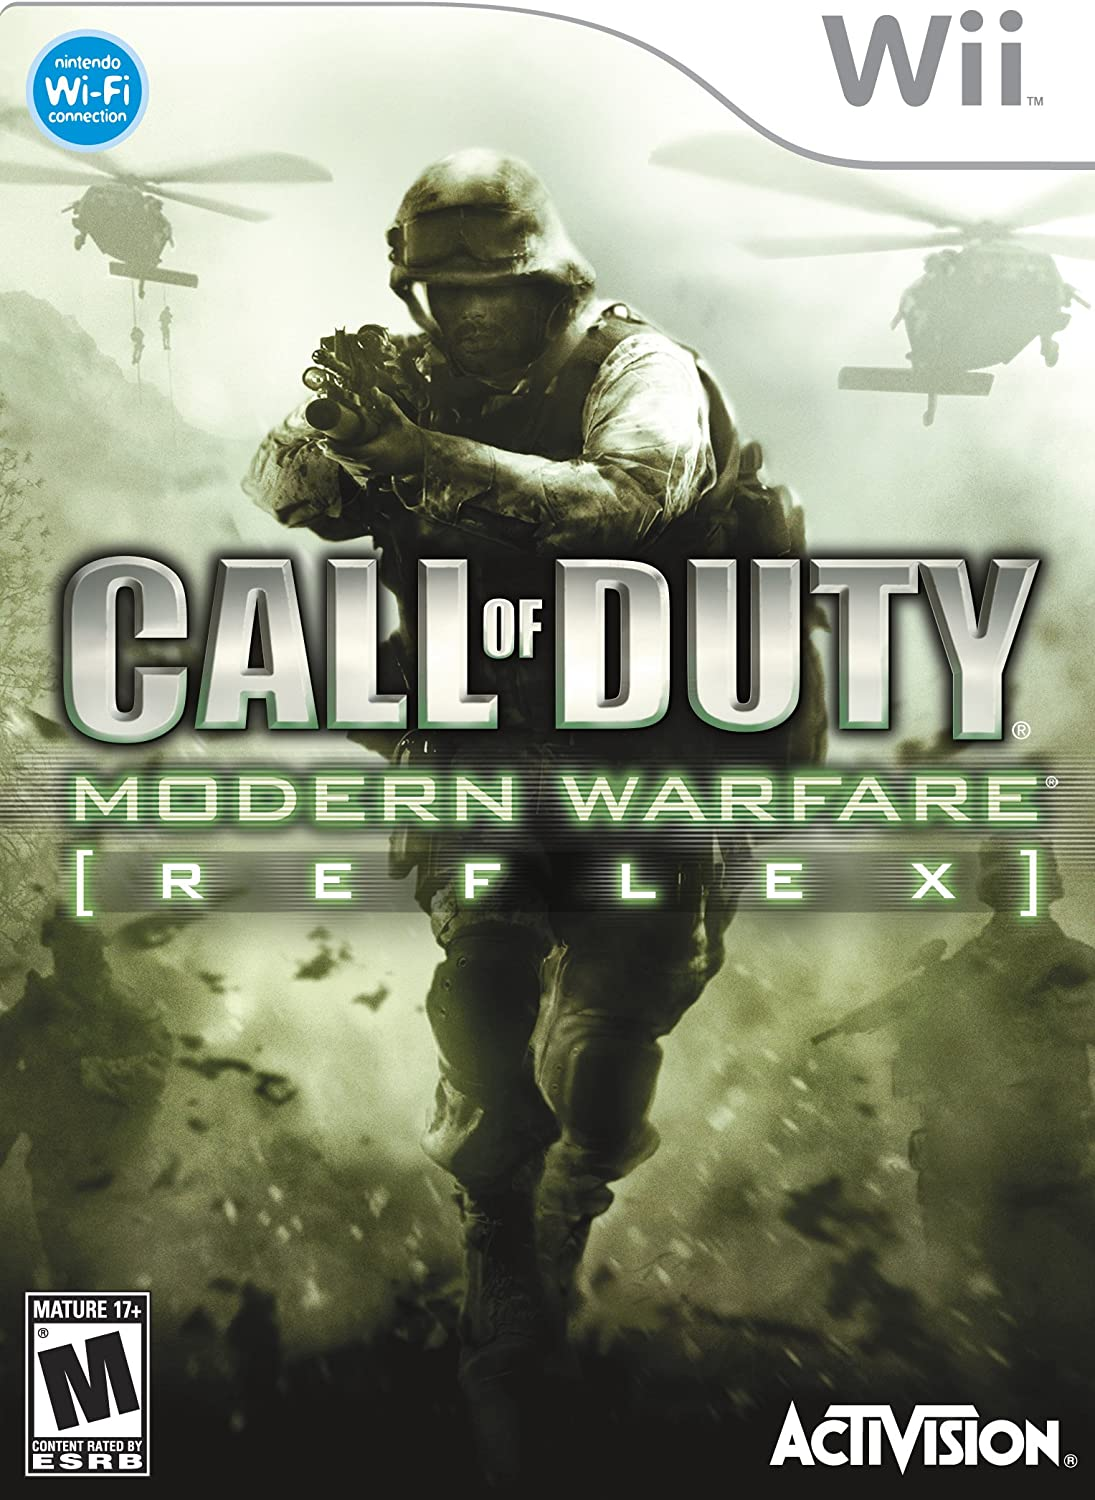 call of duty american rush 2 english language patch download